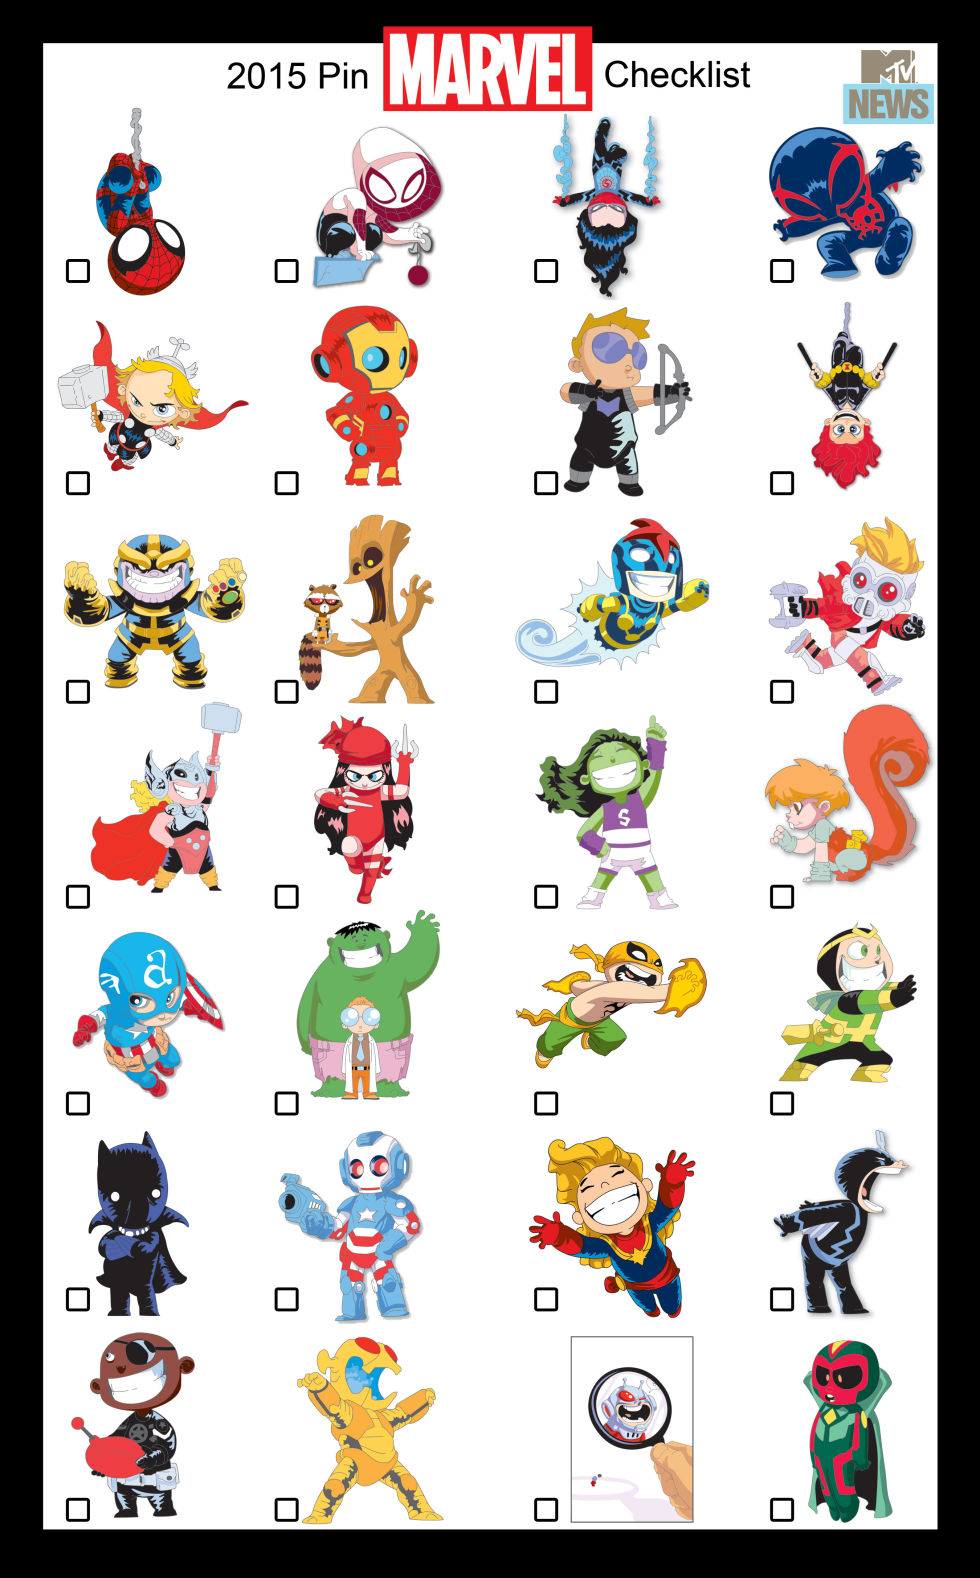 Marvel turns Skottie Young's Art into these Adorable Pins